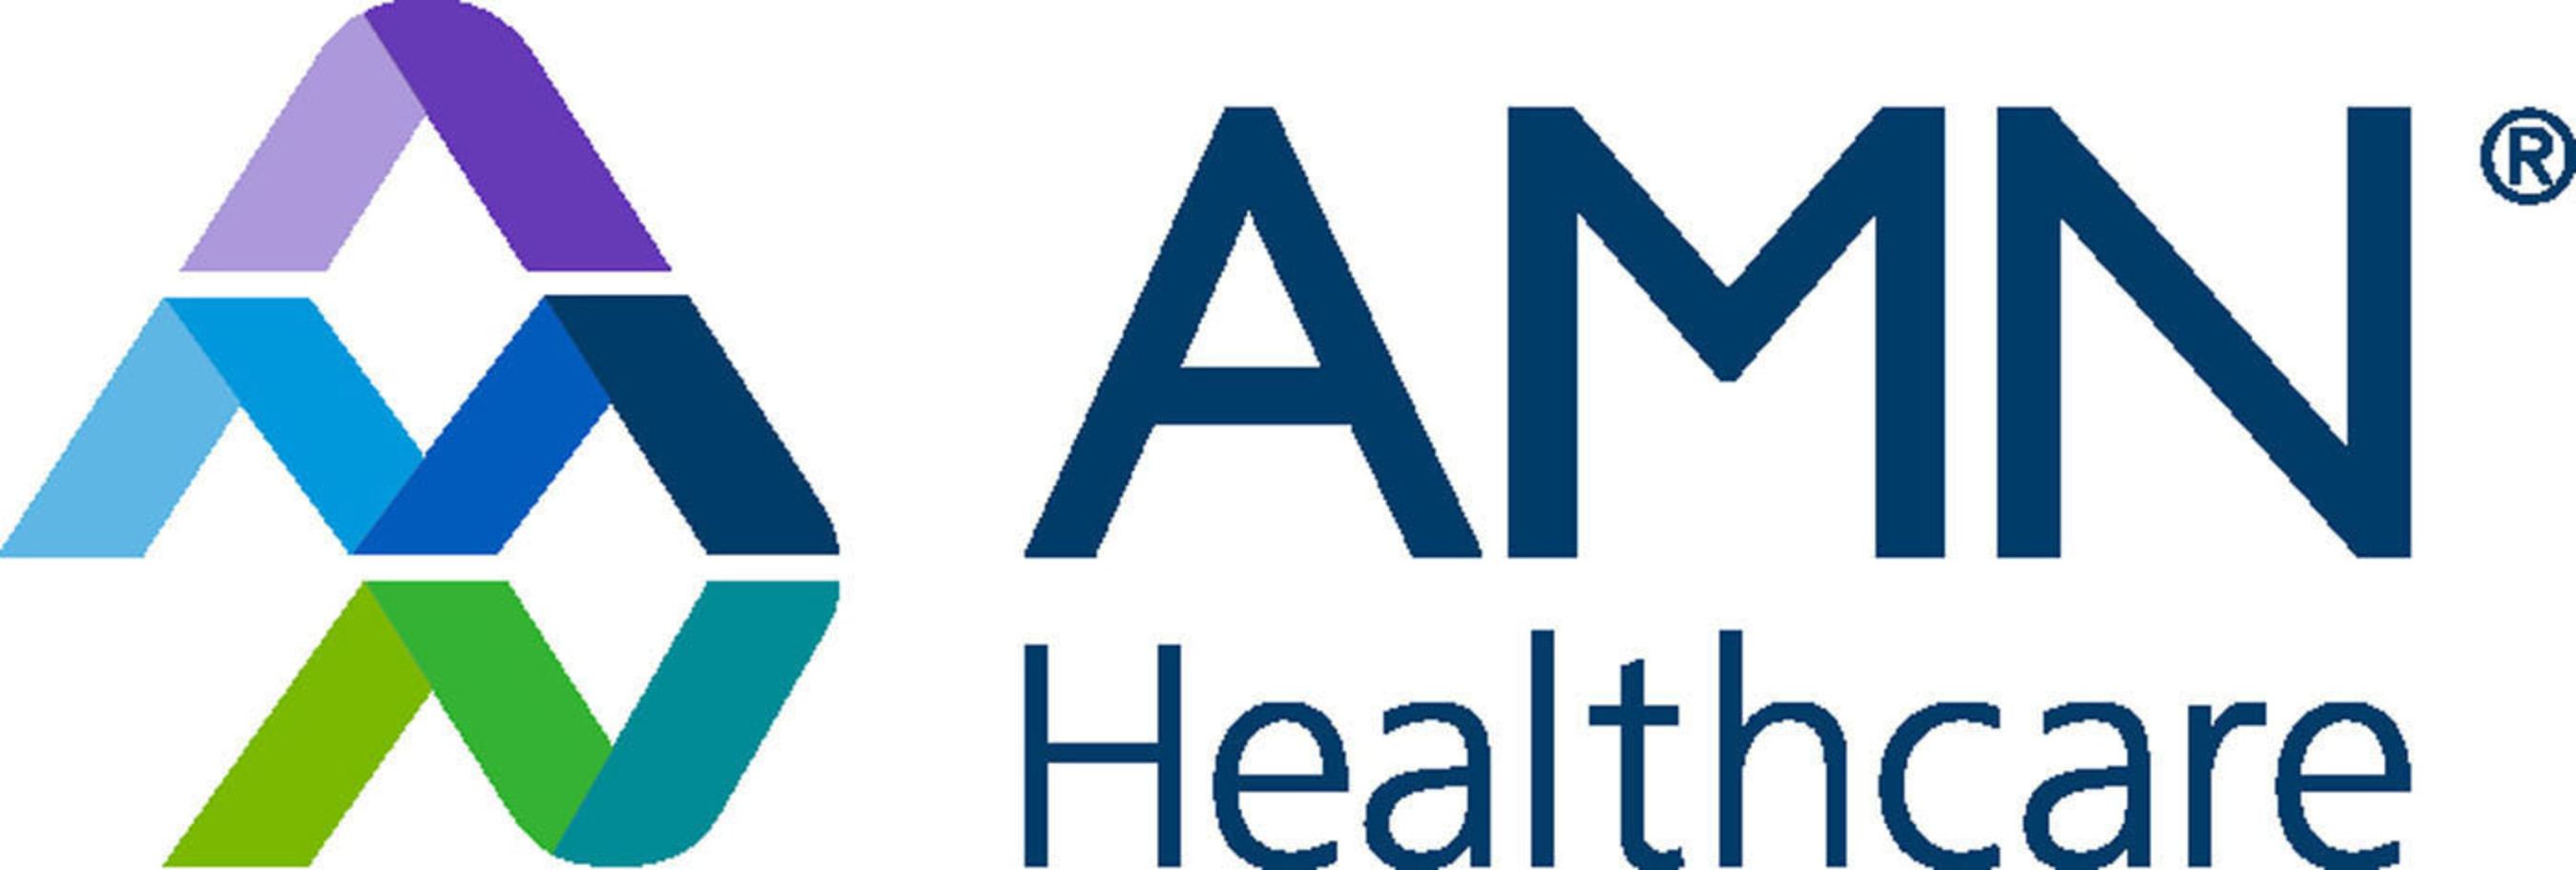 AMN Healthcare Completes the Acquisition of The First String Healthcare